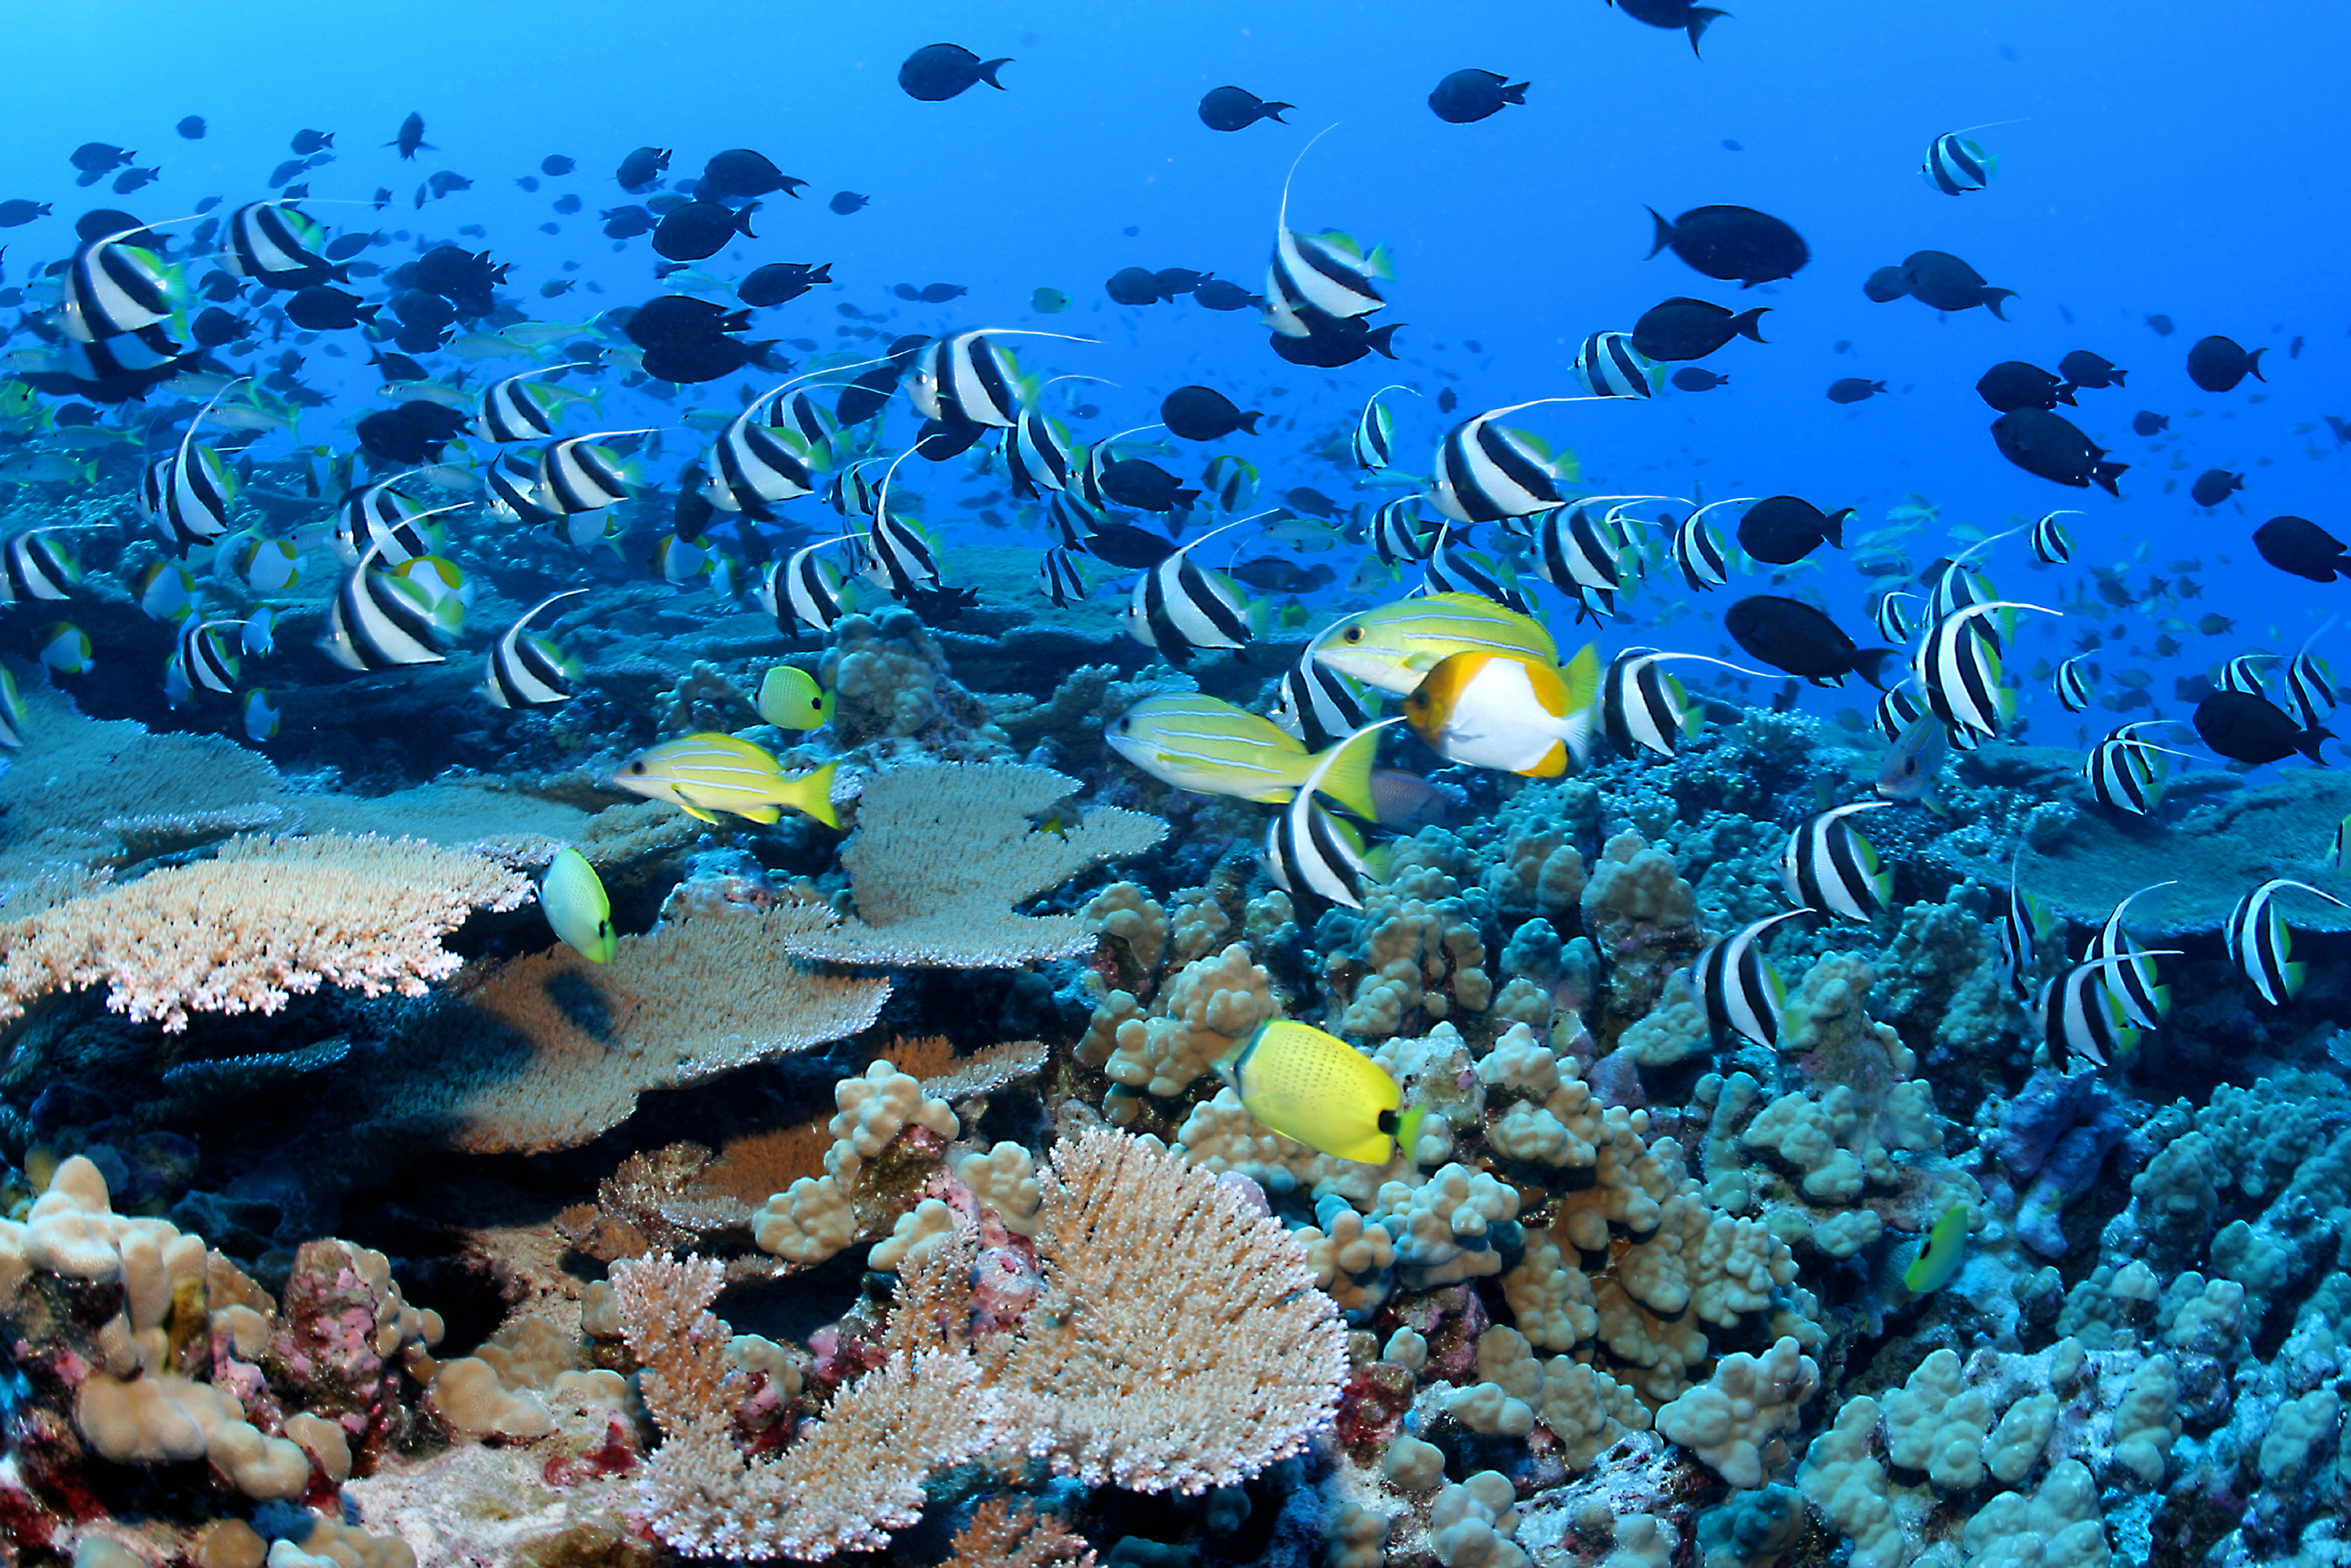 Reef Fishes Wallpaper HD wallpapers   Coral Reef Fishes Wallpaper 3000x2001